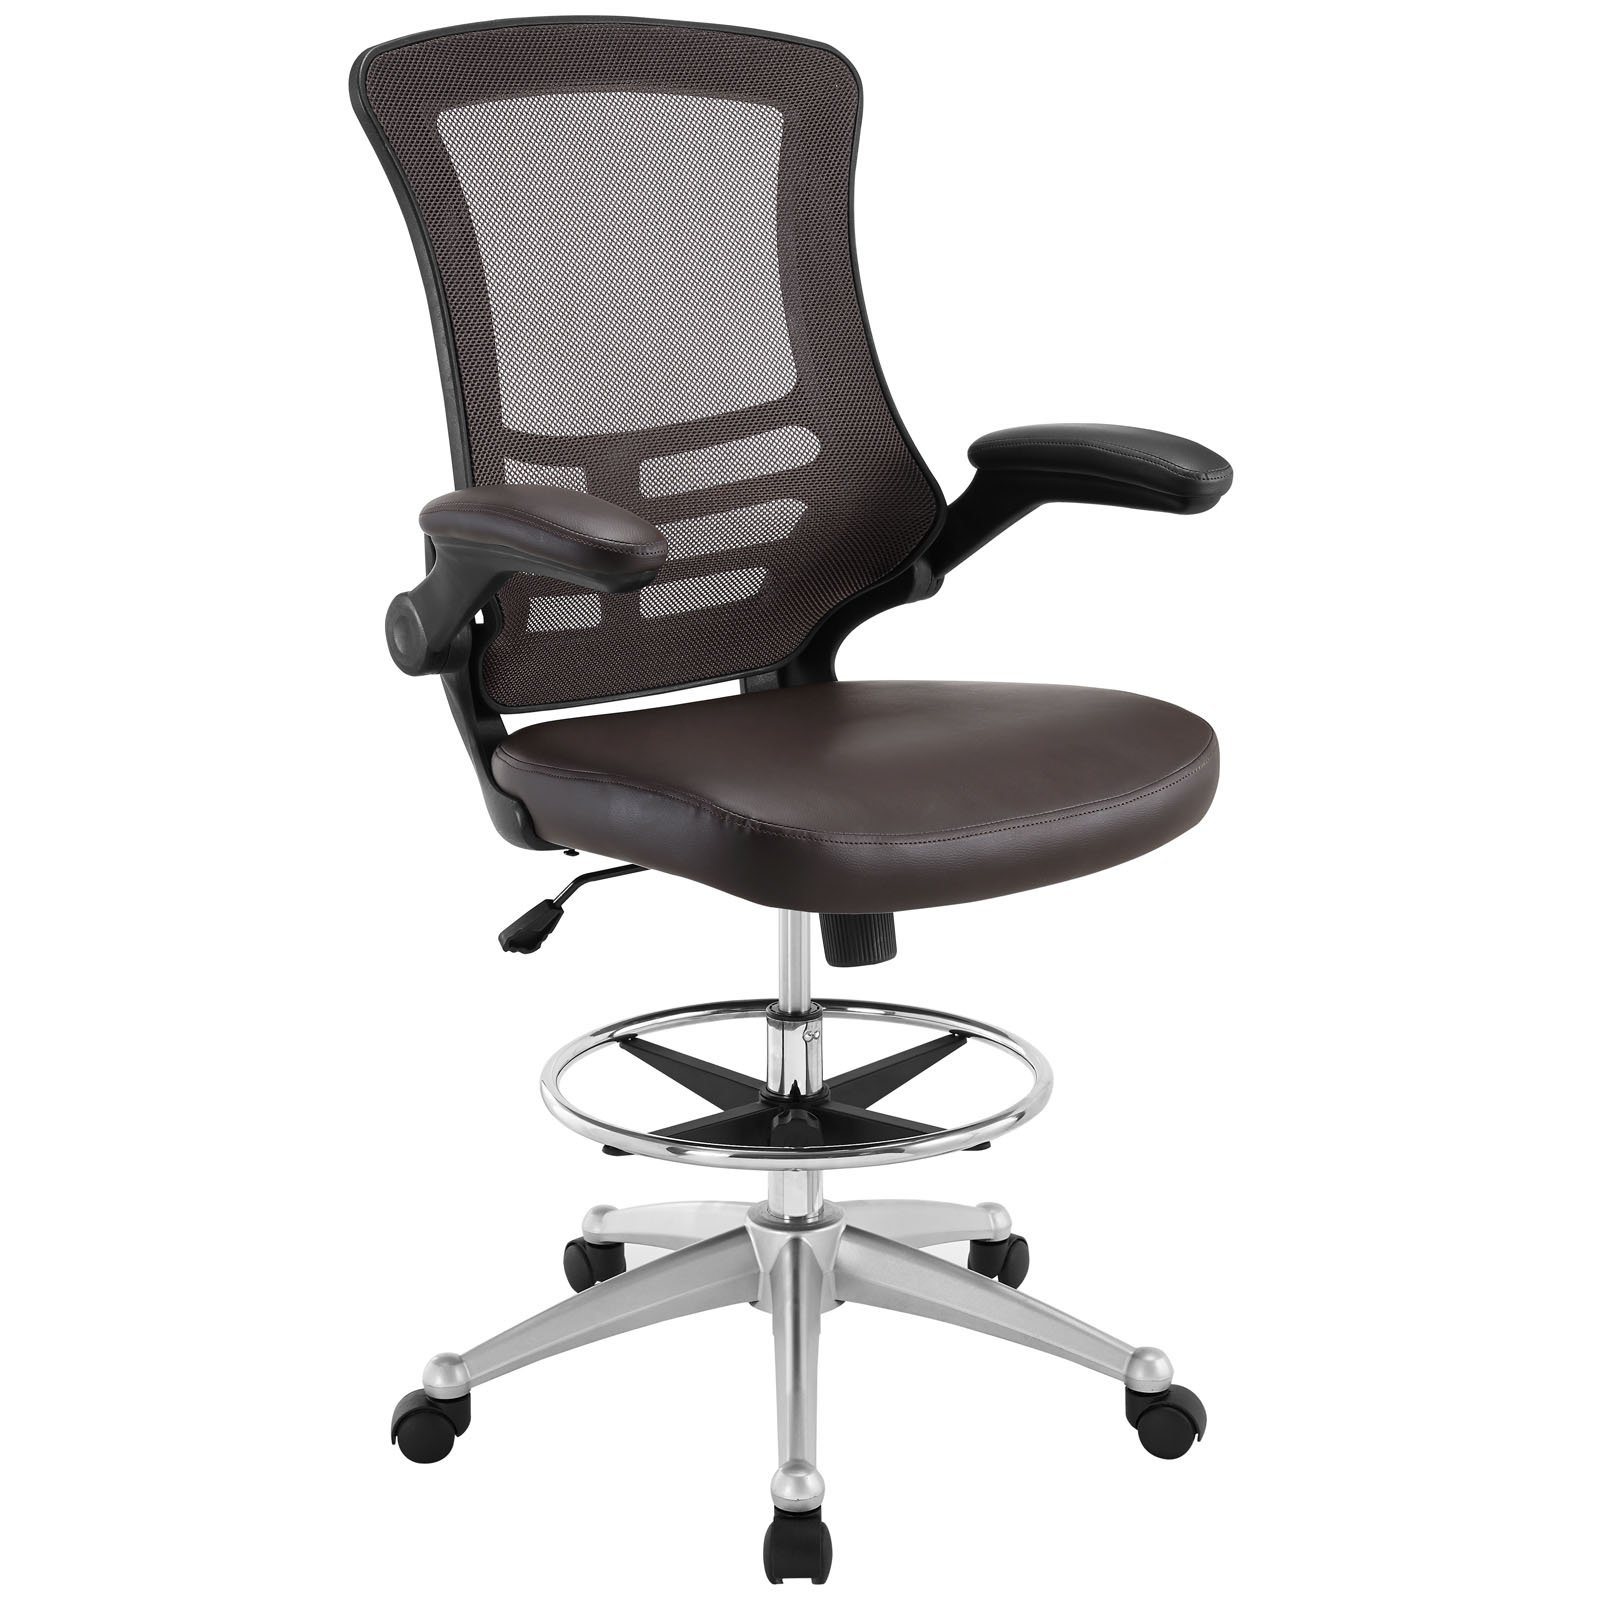 Modway Attainment Drafting Chair In Brown - Tall Office Chair For Adjustable Standing Desks - Drafting Stool With Flip-Up Arm Drafting Table Chair